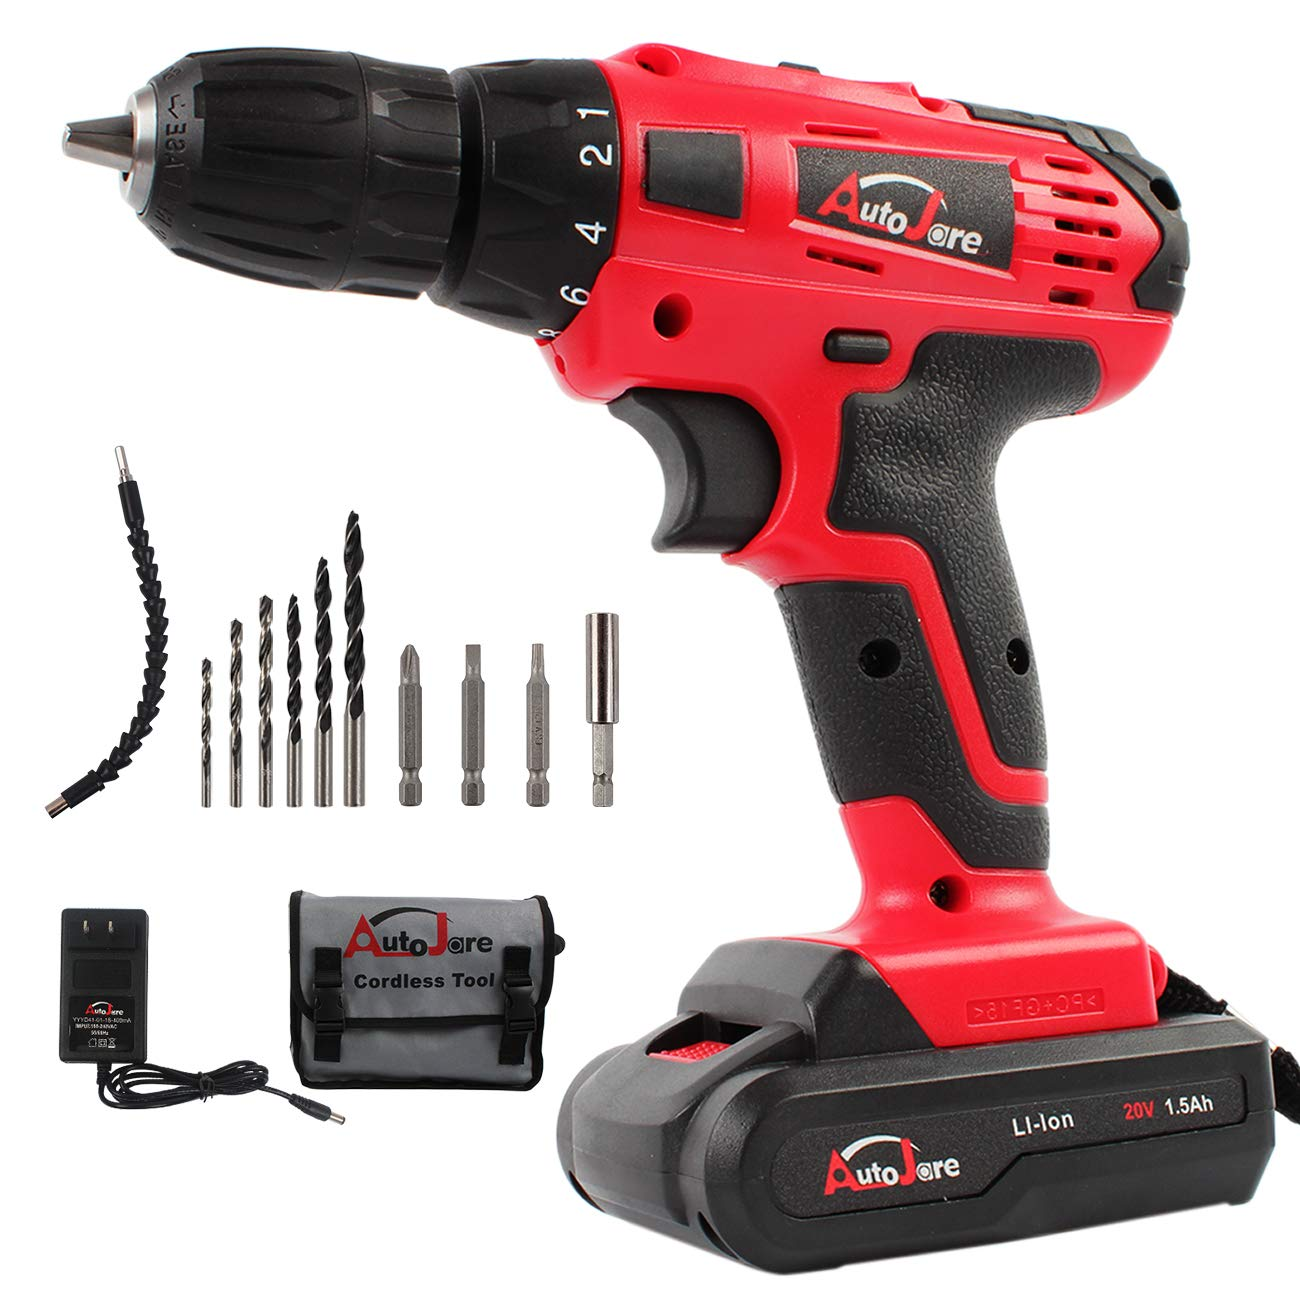 "20V Electric Cordless Drill - 3/8"" Keyless Chuck, Lightweight Cordless Drill,Rechargeable Lithium-Ion battery Drill/Driver,Durable&Fast Application Speeds Dirll kit by AUTOJARE"